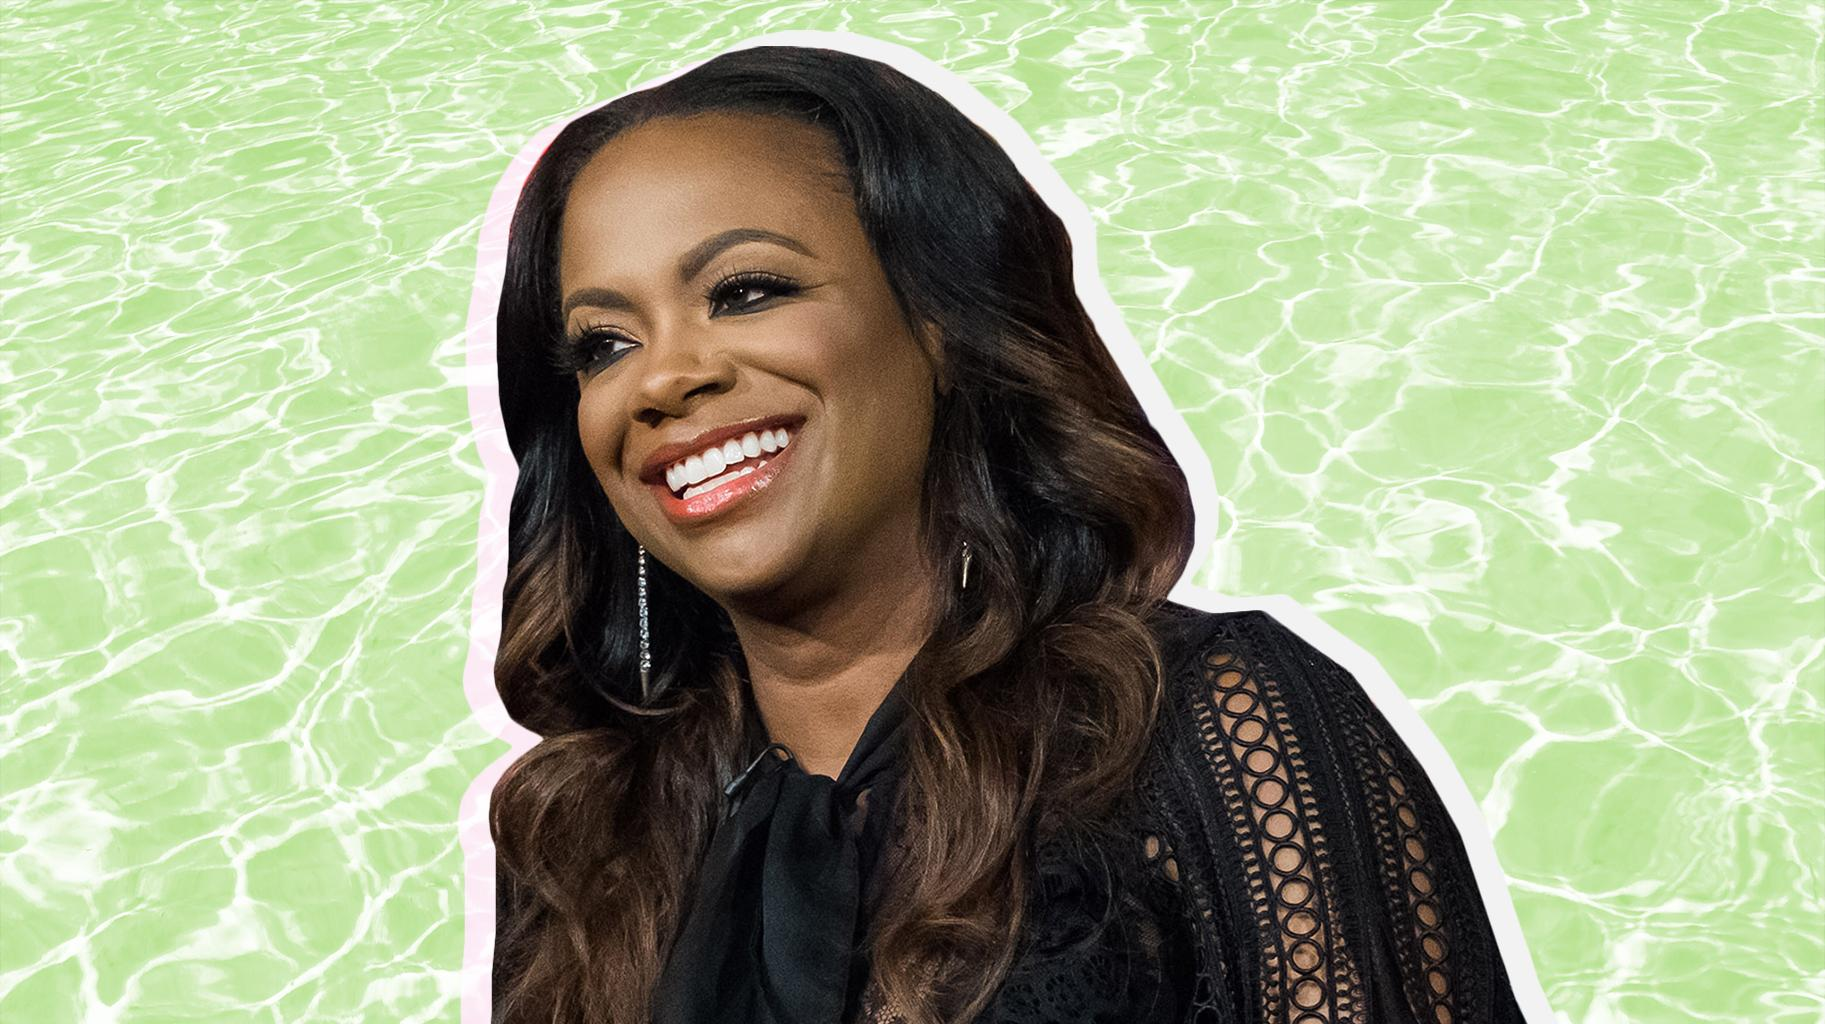 Kandi Burruss Shares A Photo Featuring Todd Tucker And Fans Call Them A Power Couple